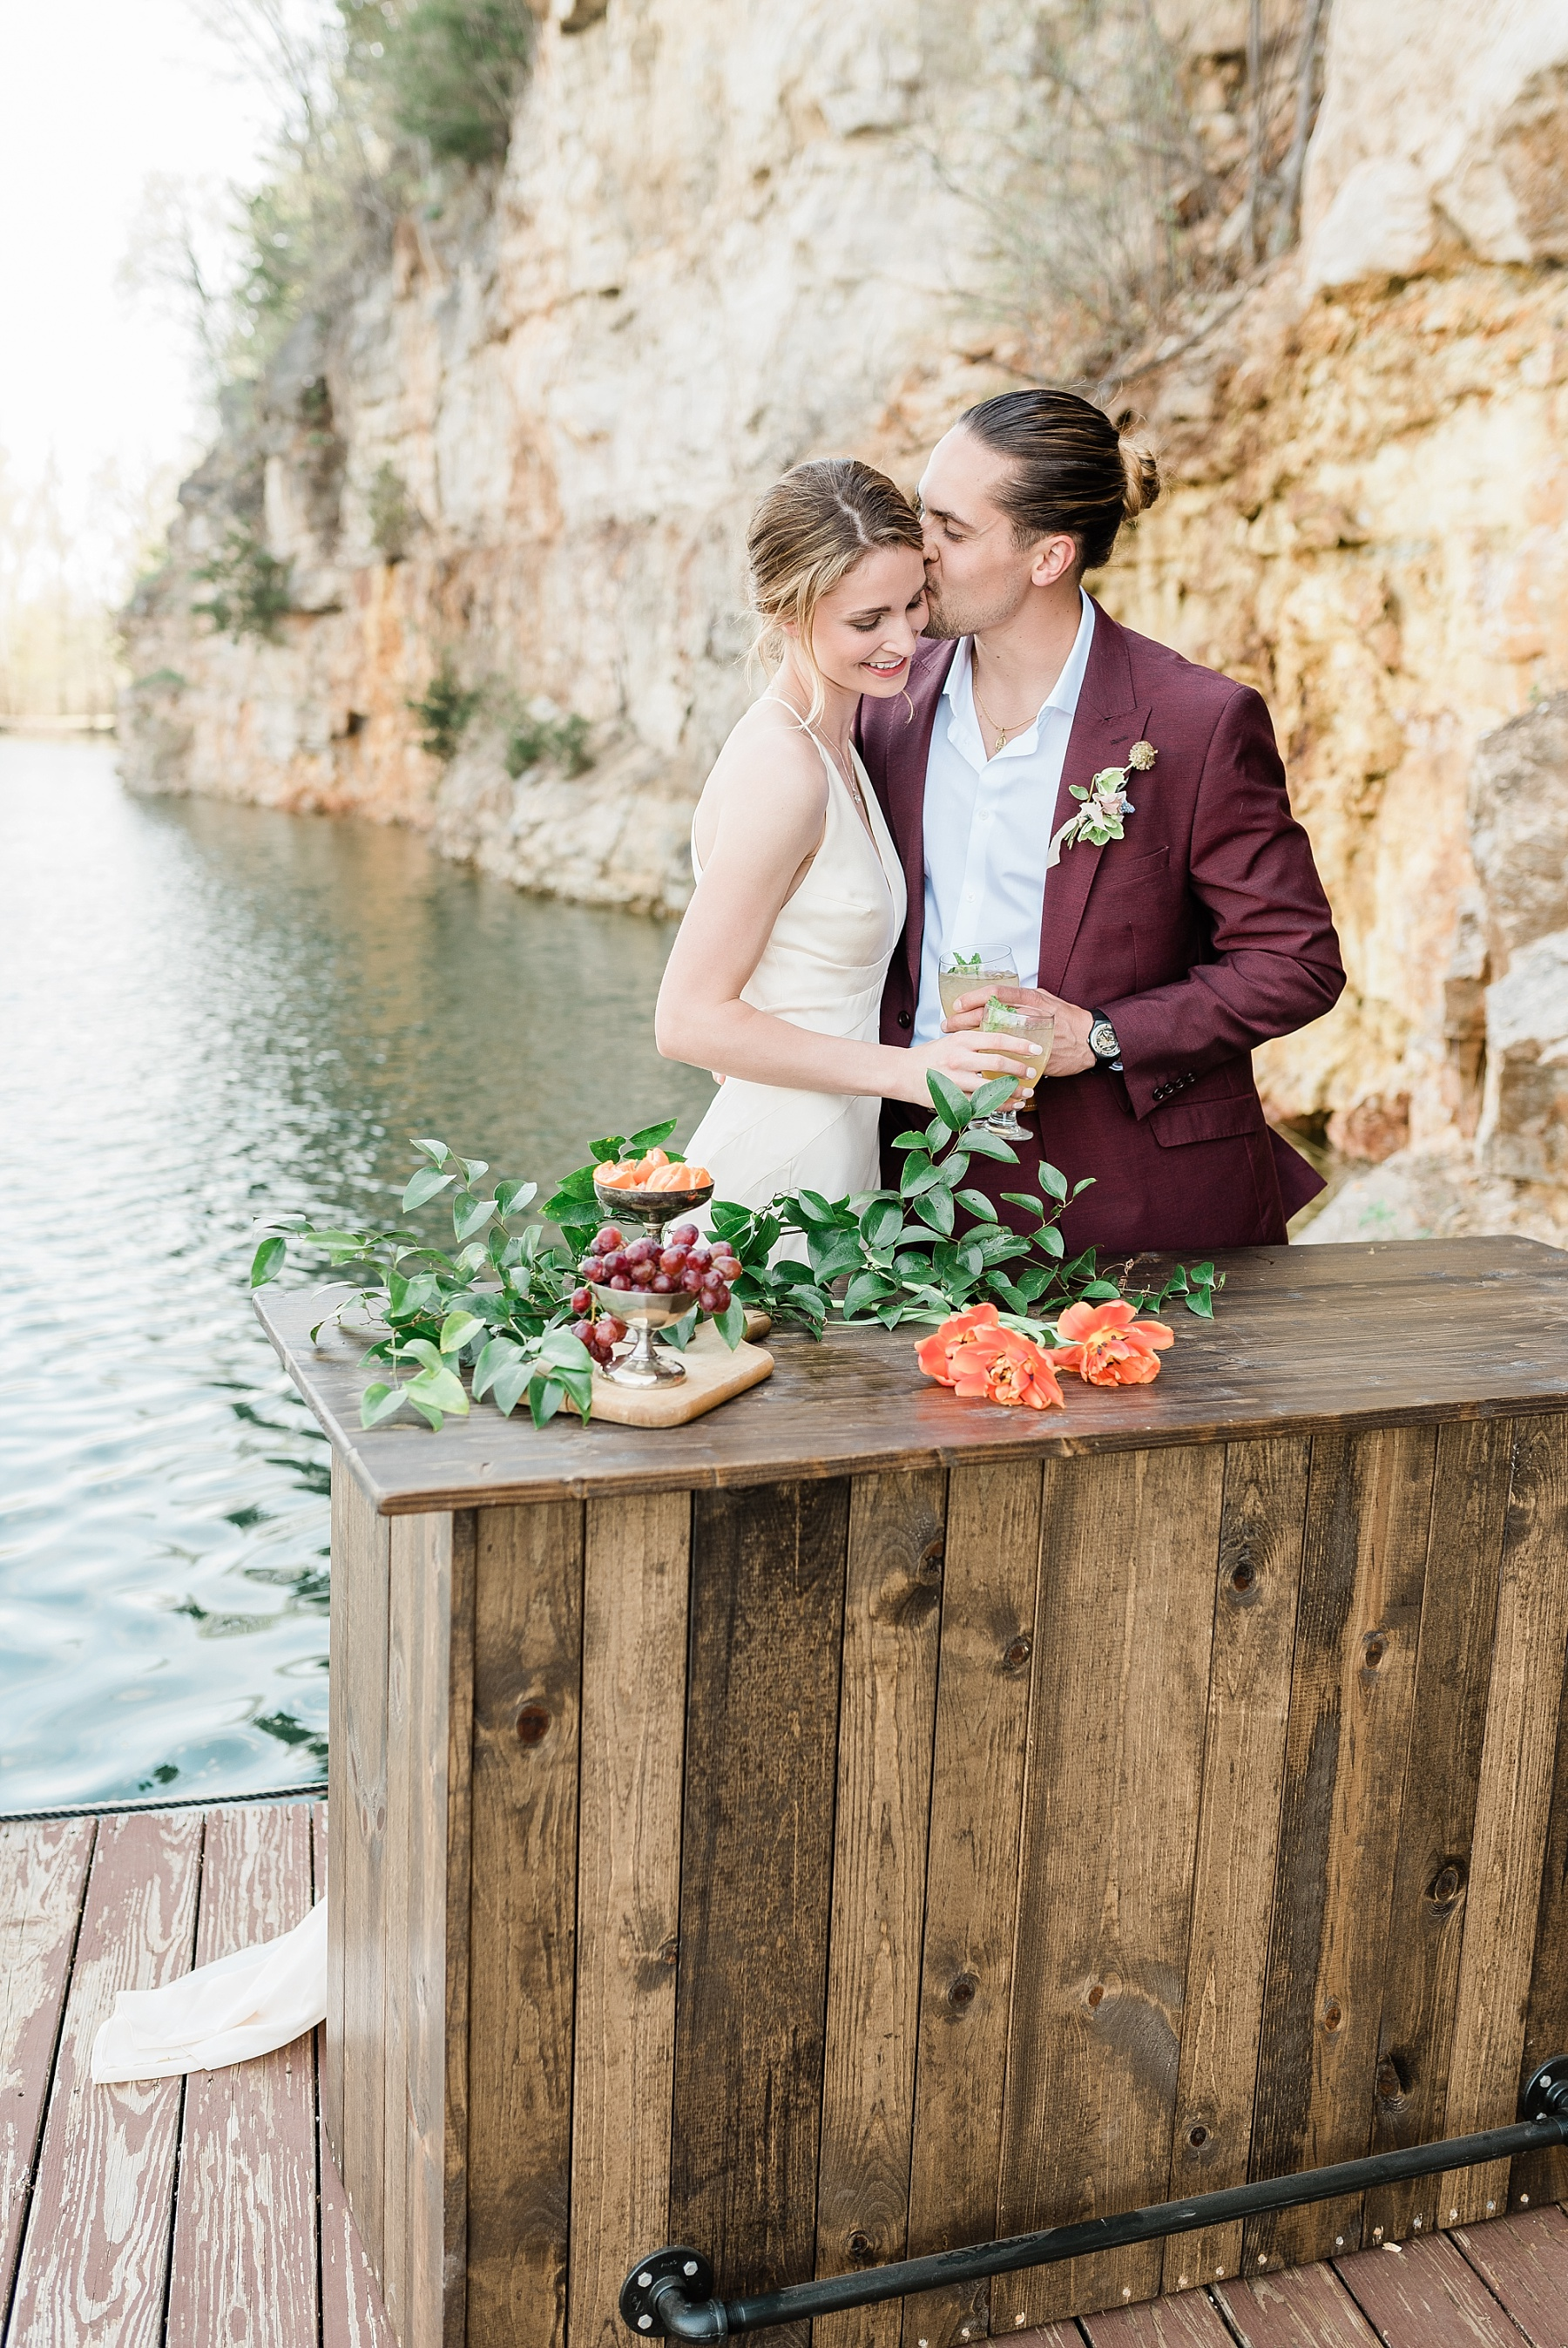 Intimate Spanish and French Inspired Destination Wedding with Lakeside Dinner Party at Dusk at Wildcliff by Kelsi Kliethermes Photography Best Missouri and Maui Wedding Photographer_0061.jpg